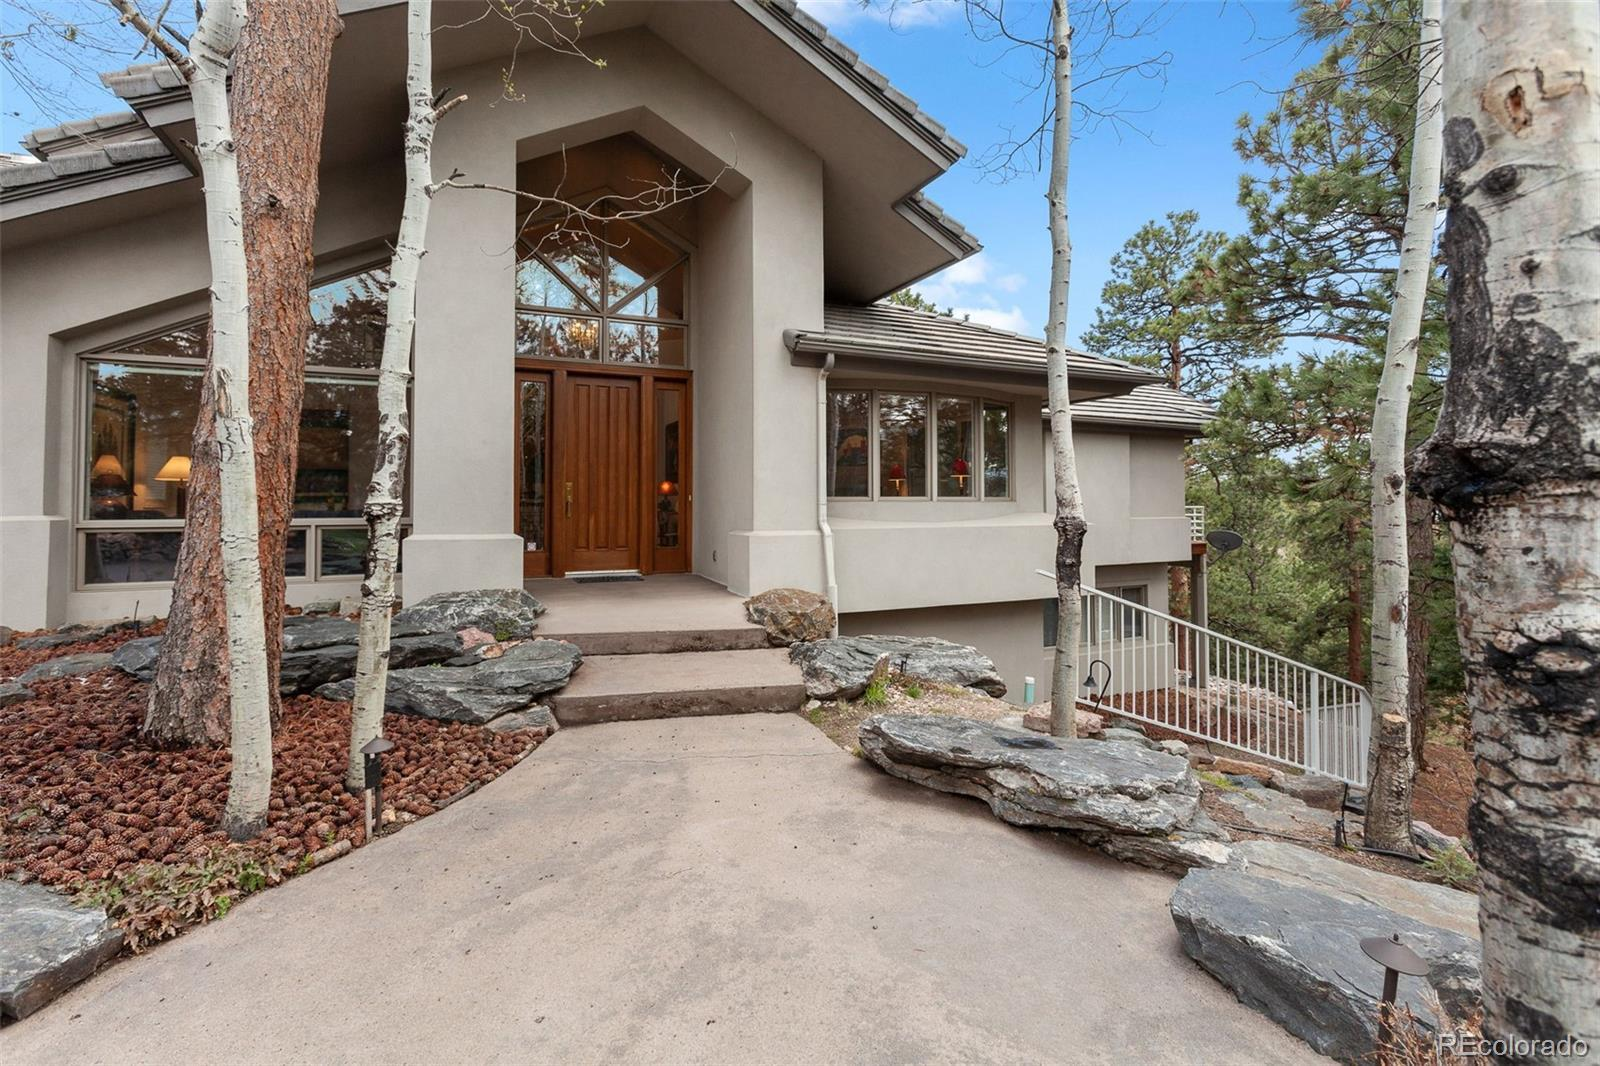 1434 Solitude Lane, Evergreen, CO 80439 - #: 5865891